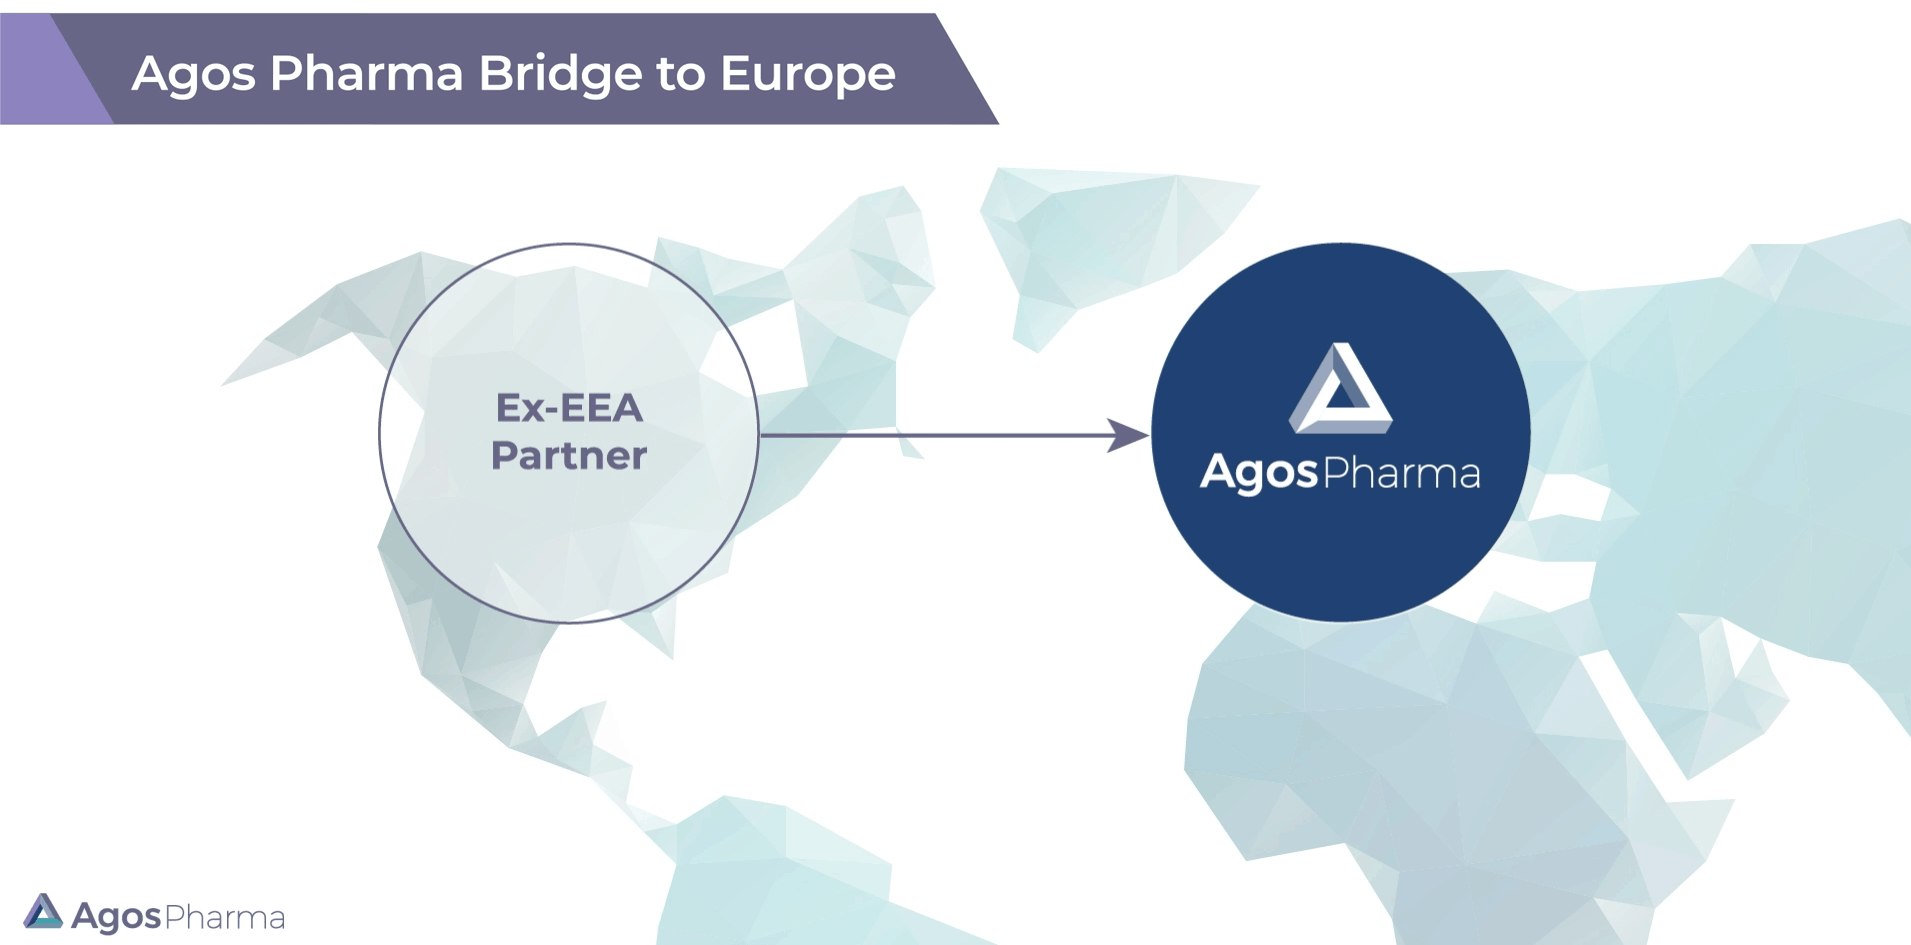 Agos Pharma Bridge to Europe